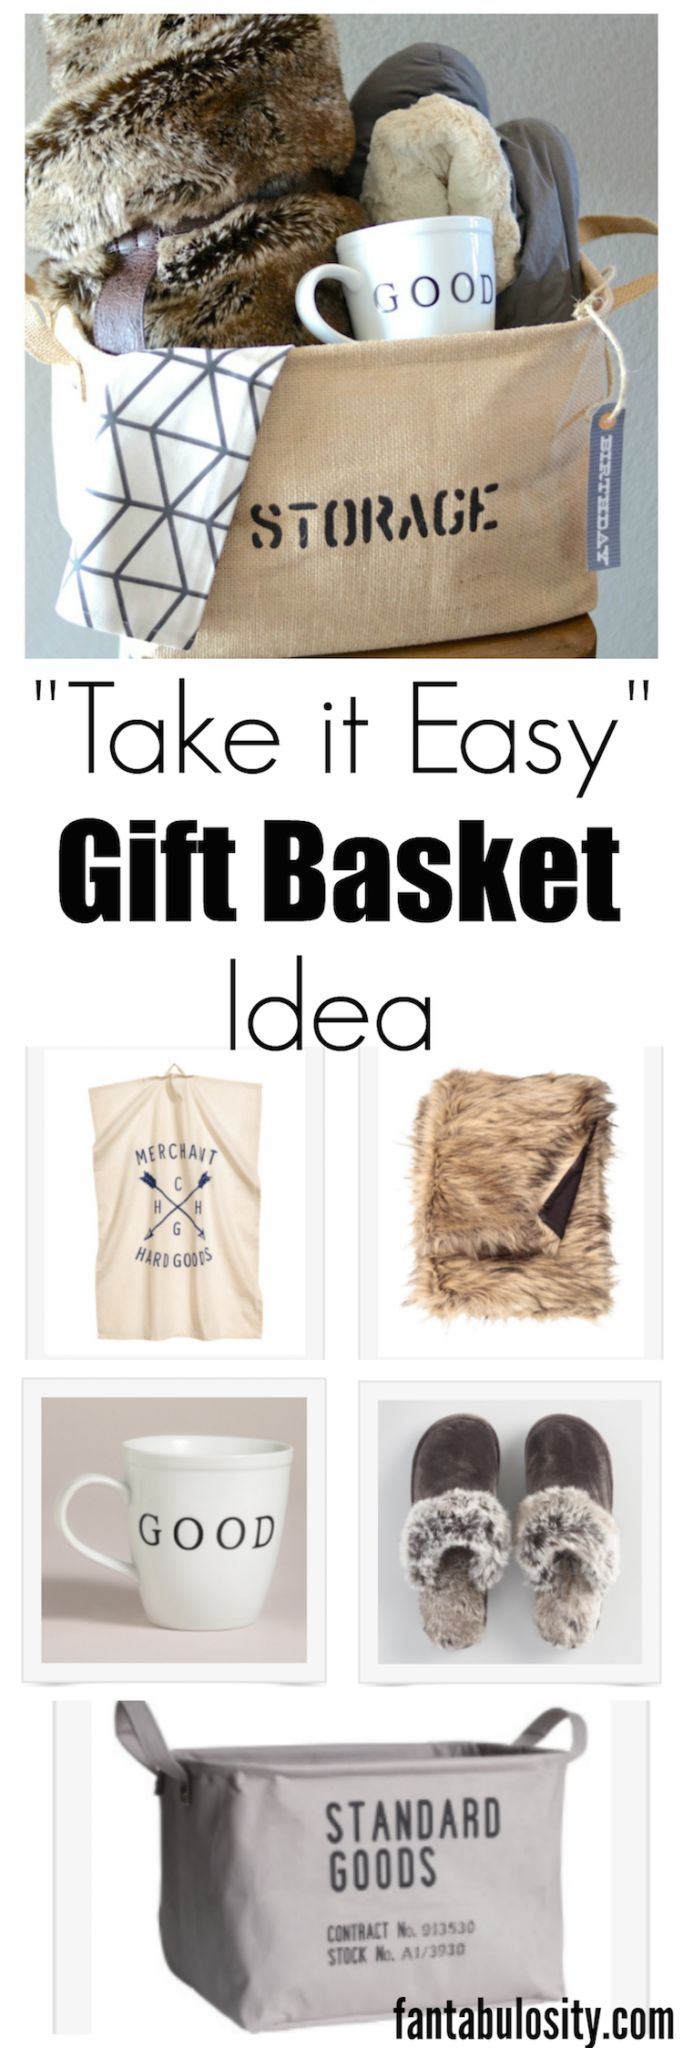 best ideas about easy gifts homemade christmas gift basket idea for men or women fantabulosity com